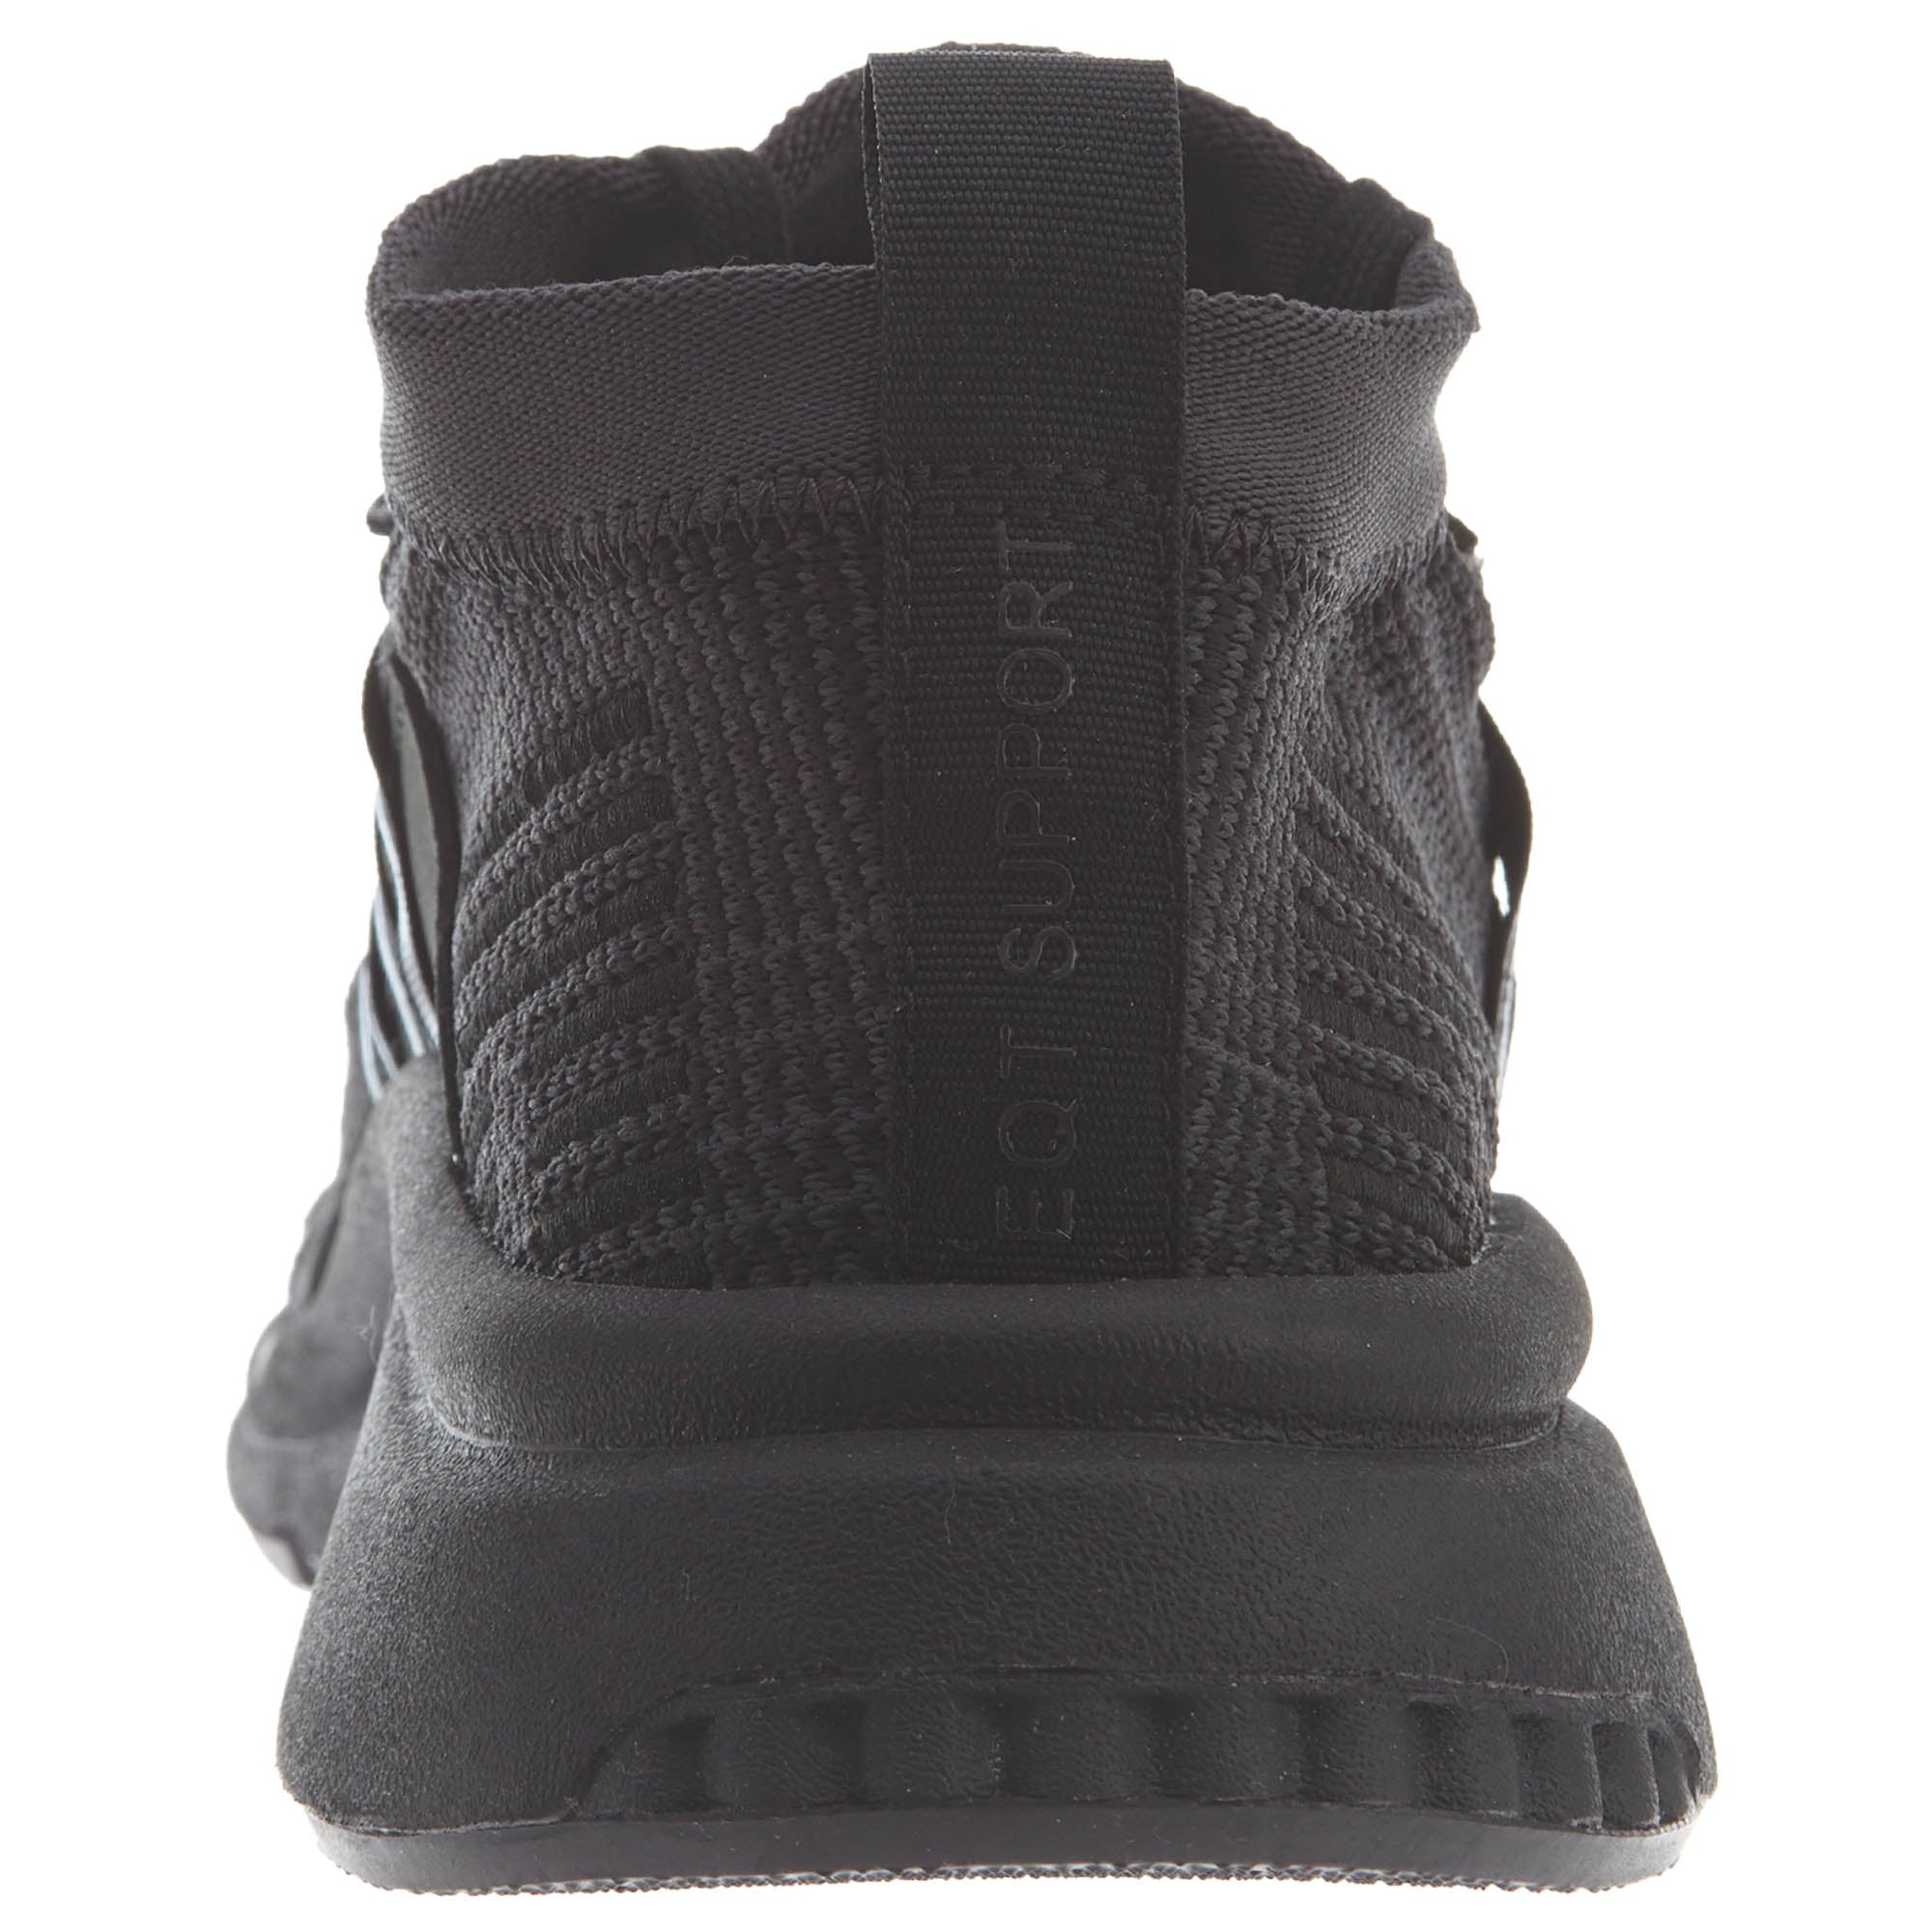 a30f24c07332 Adidas Eqt Support Mid Adv Pk Mens Style   B37456-Blk. ADIDAS   Athletic  Shoes   Sneakers